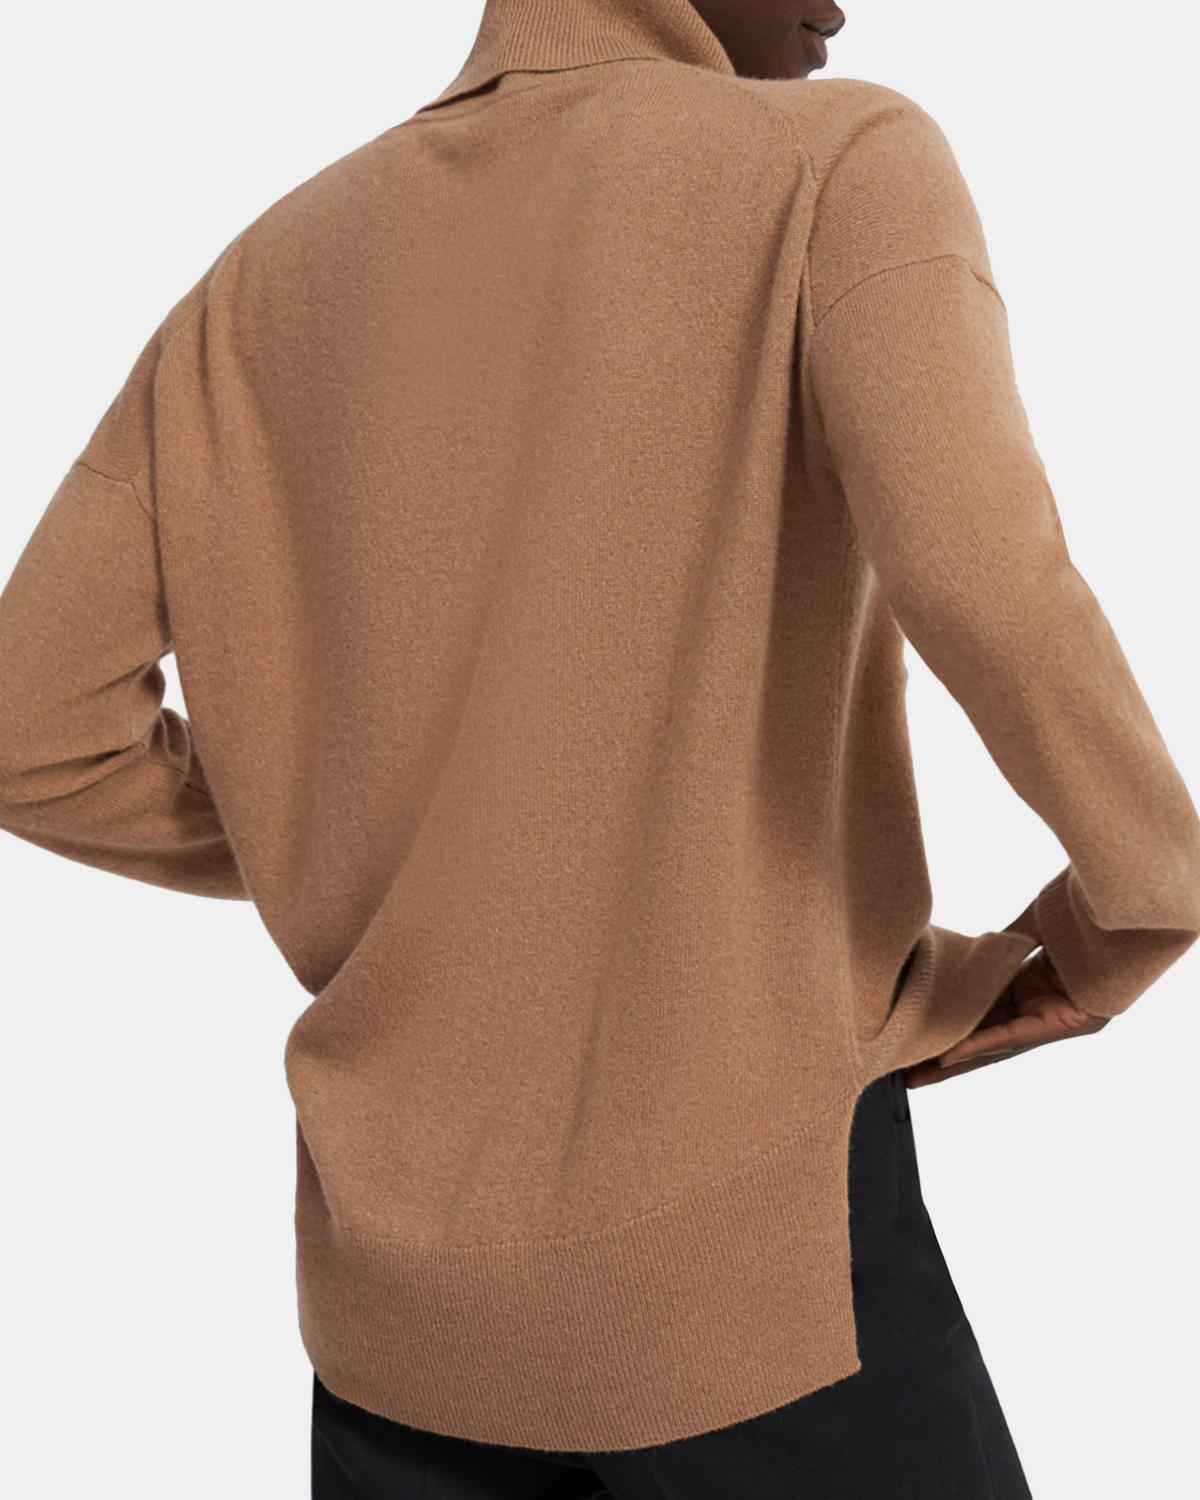 Karenia Turtleneck Sweater in Cashmere